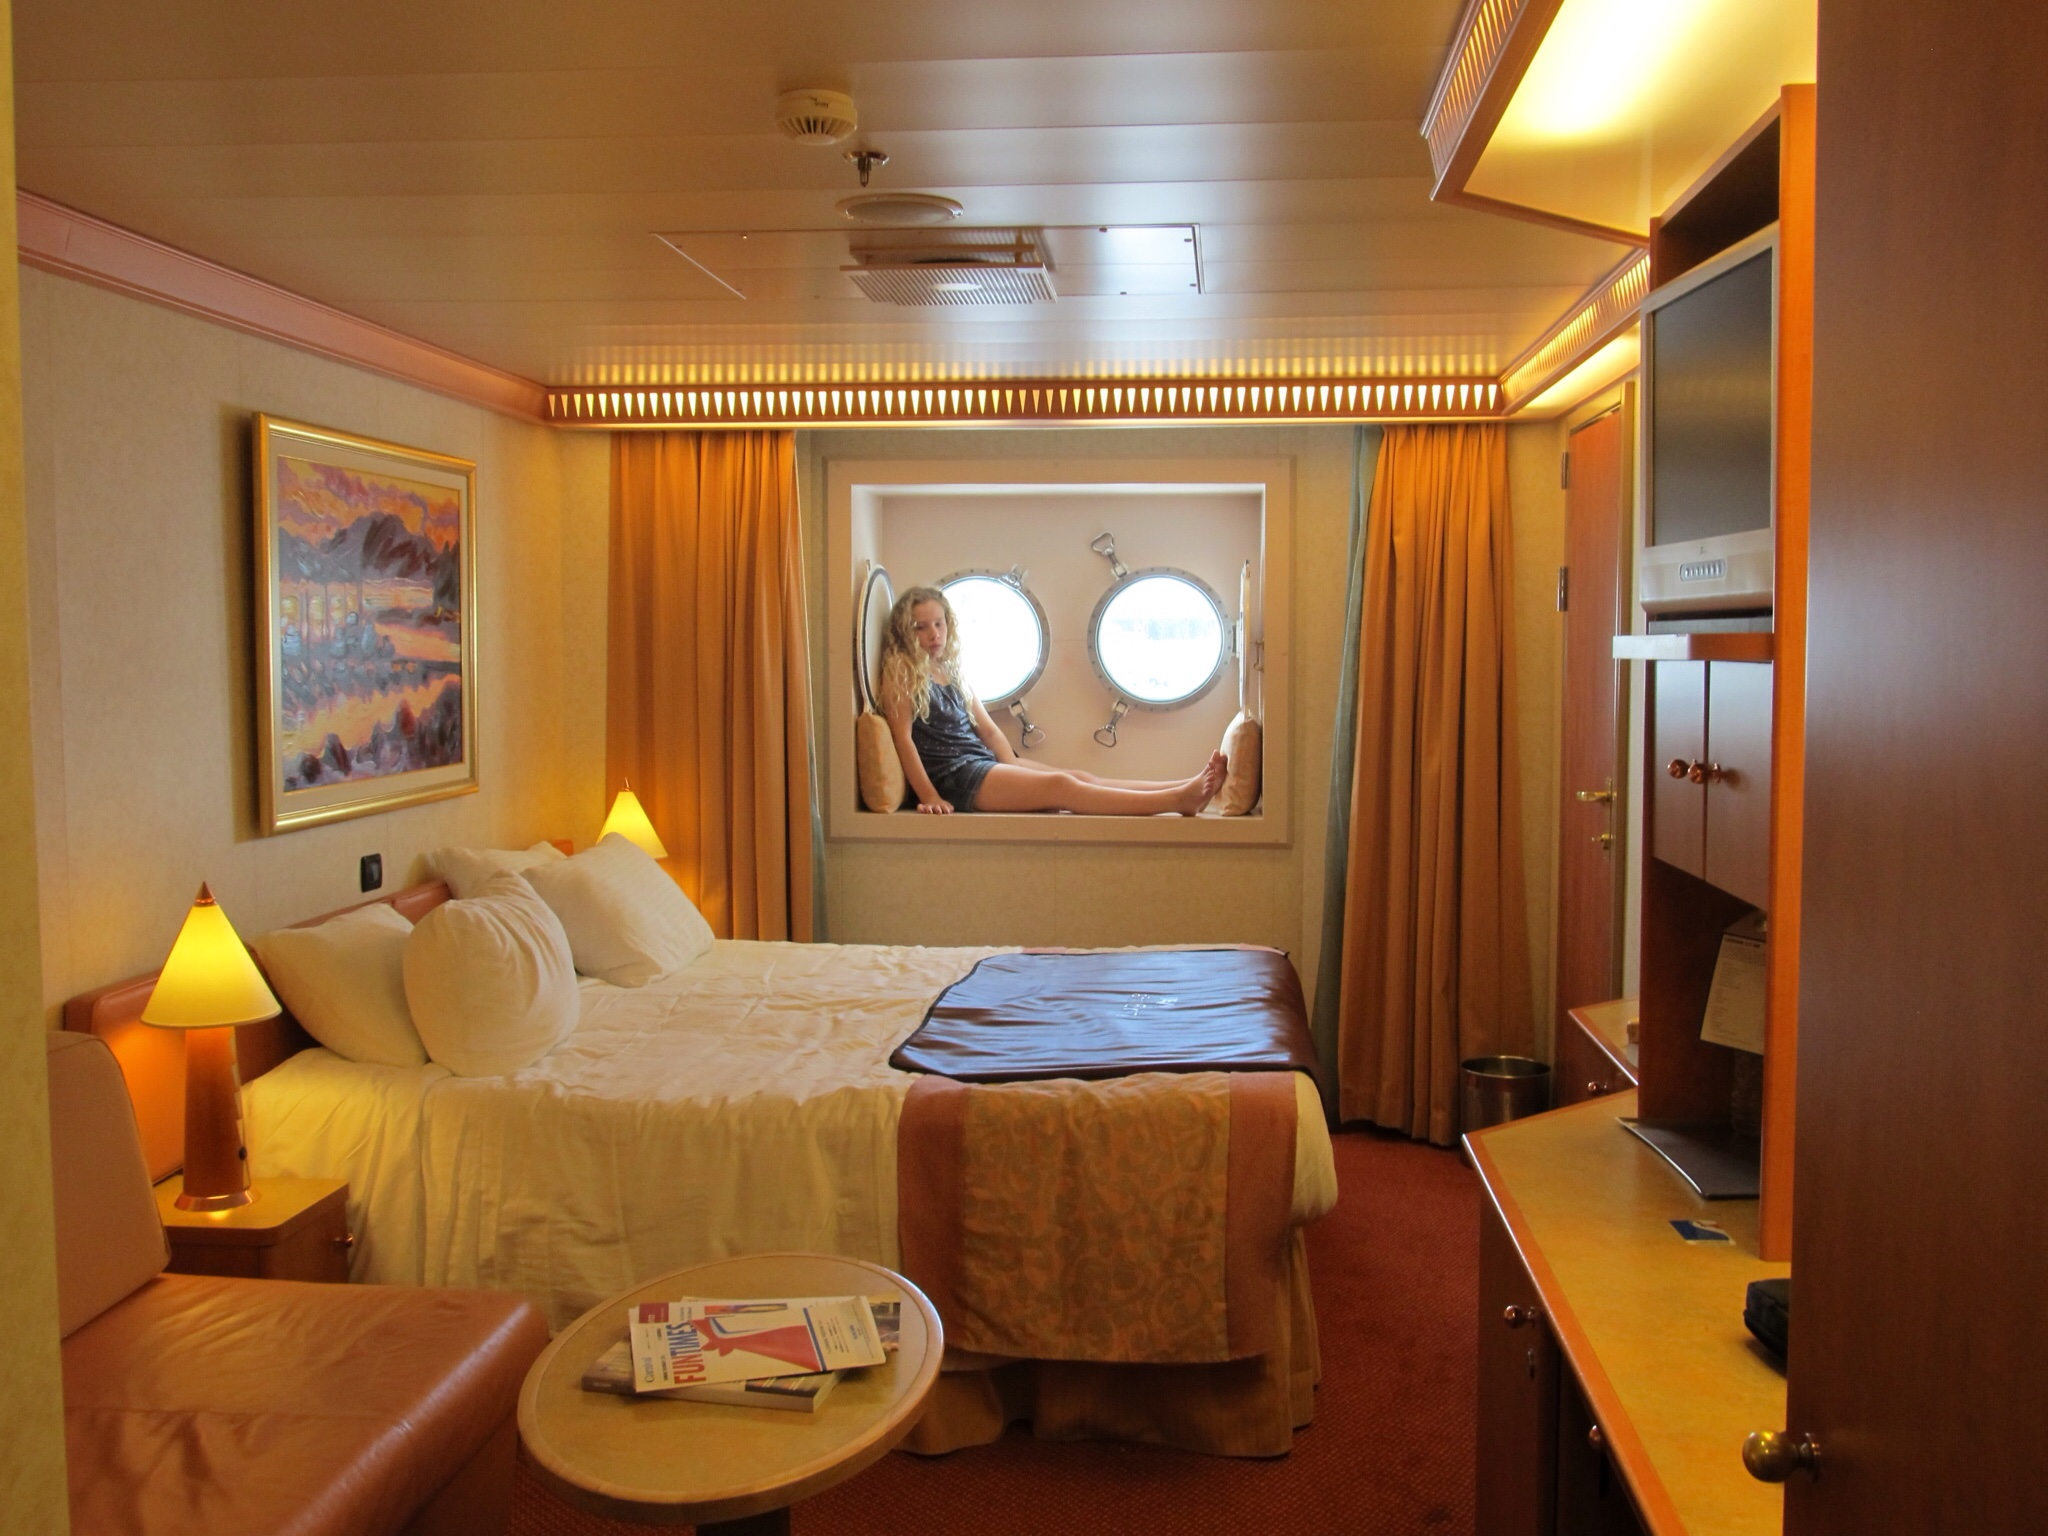 Carnival Freedom Cruise Ship Review - The Avid Cruiser  Carnival Freedom Staterooms